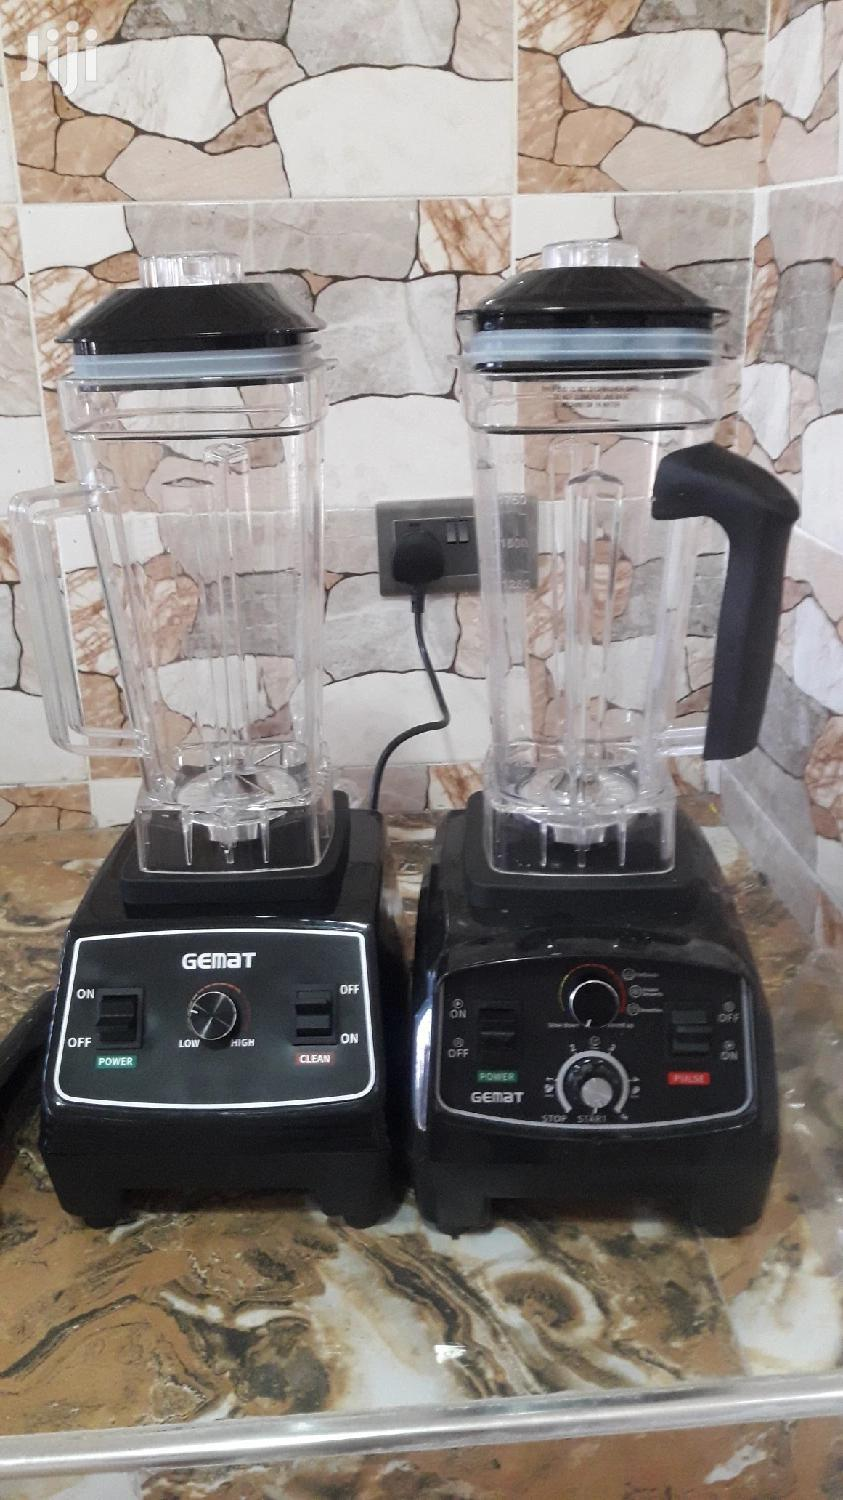 Quality Blender For Dry,Hard And Soft Ingredients